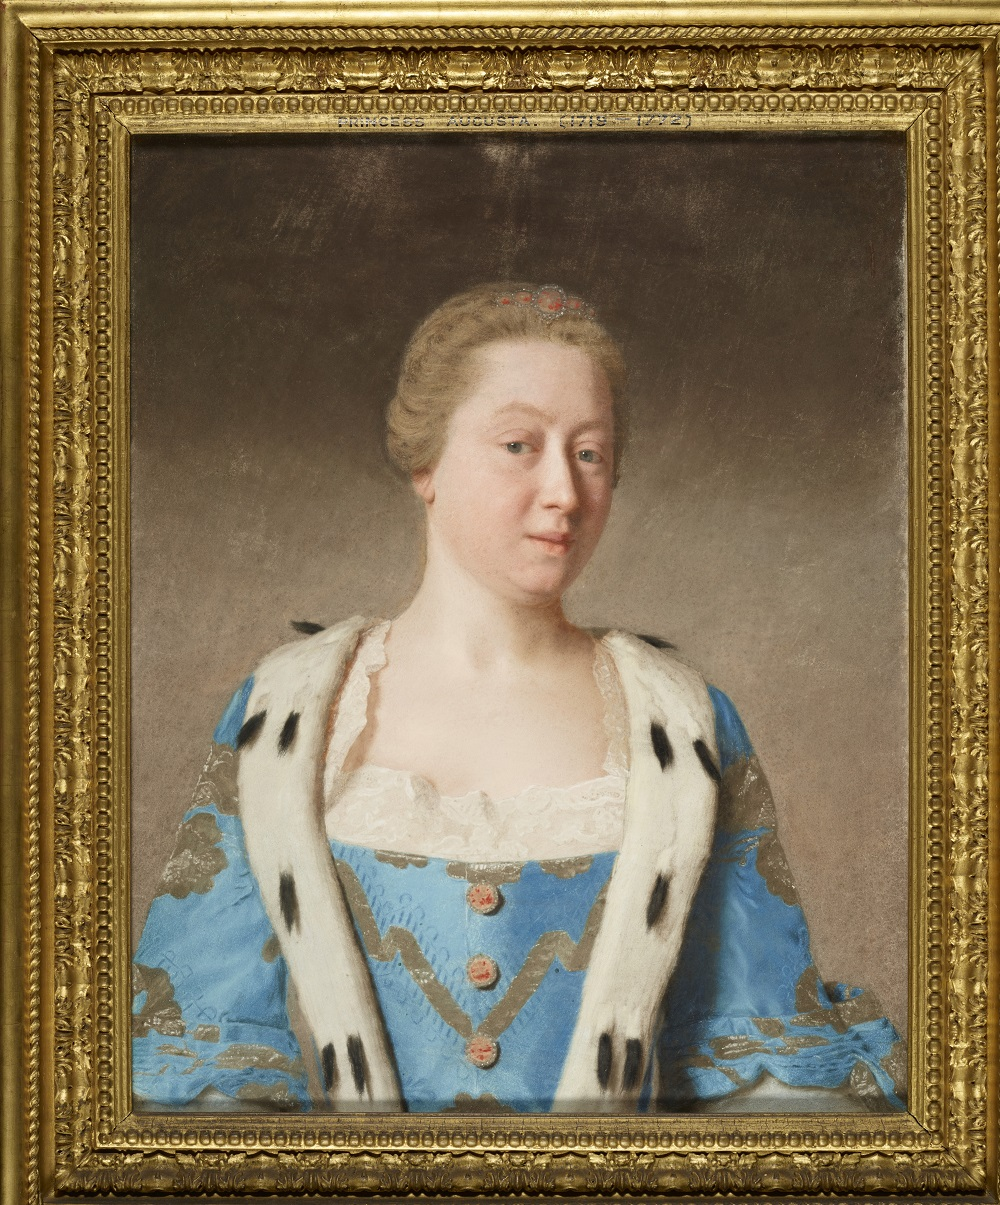 Augusta, Princess of Wales 1754, Jean-Etienne Liotard, Royal Collection Trust  c Her Majesty Queen Elizabeth II 2017